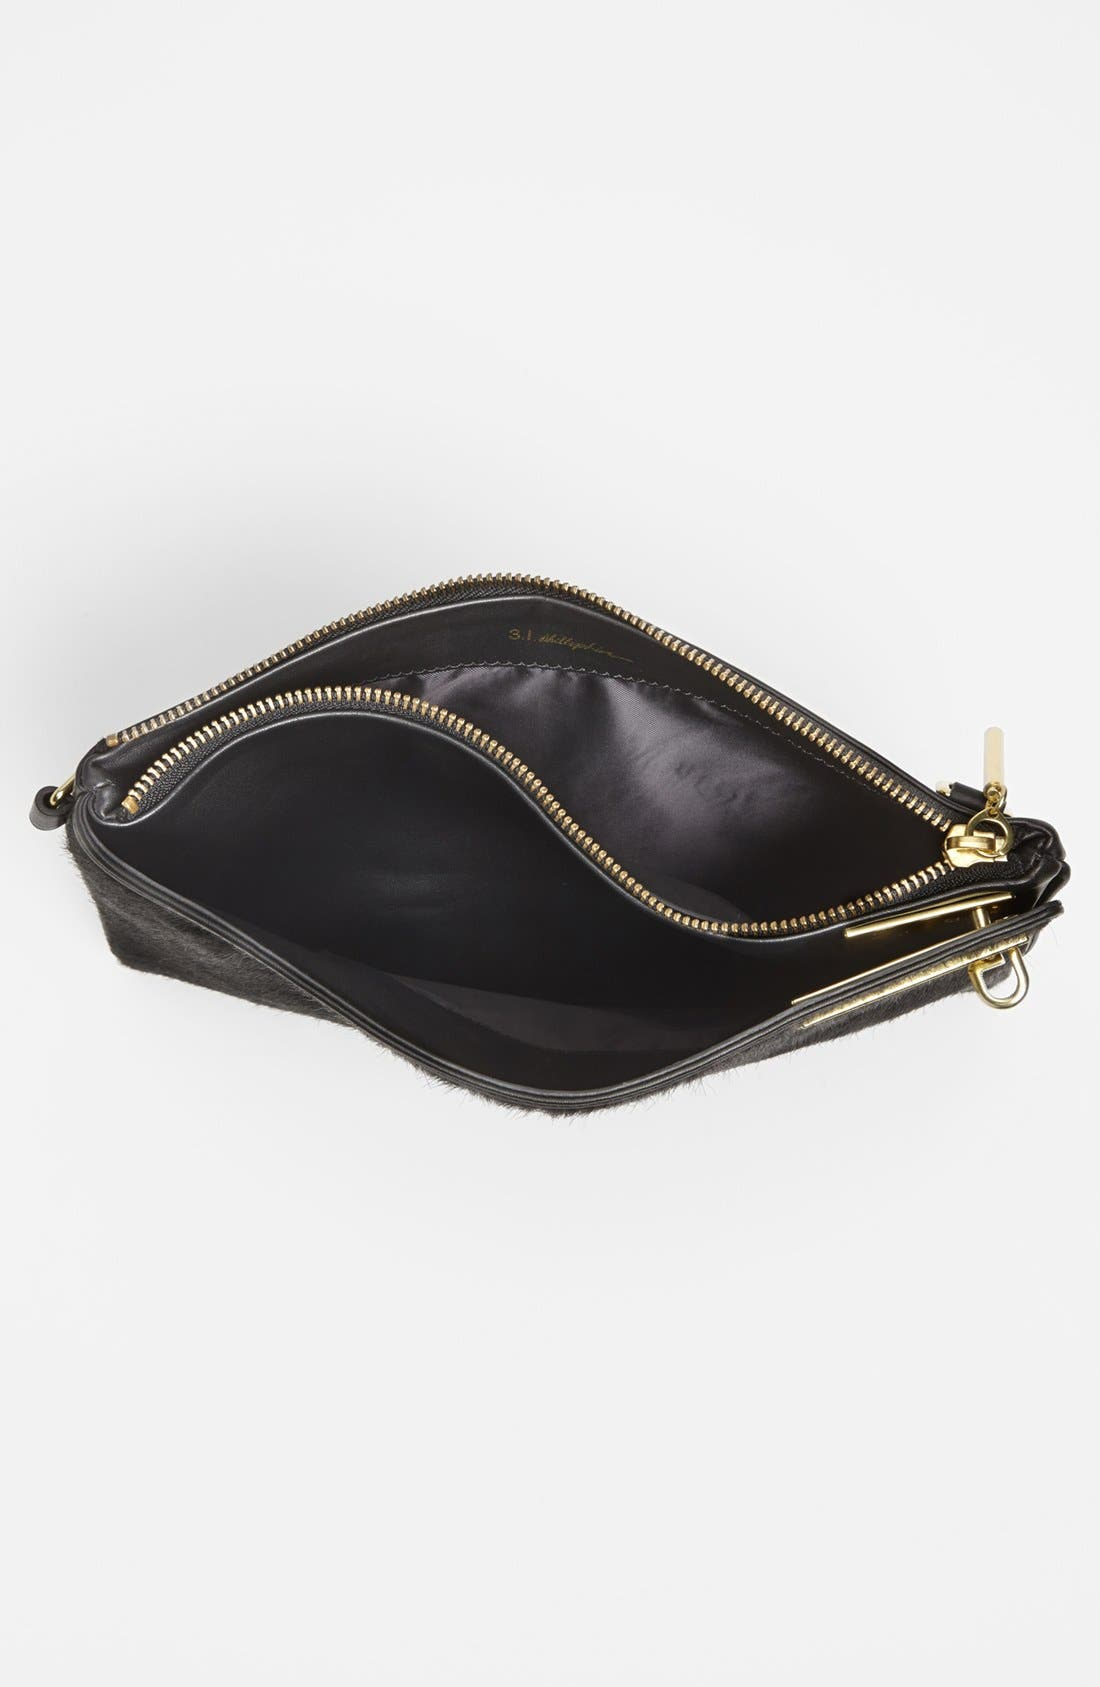 Alternate Image 3  - 3.1 Phillip Lim 'Racer' Calf Hair & Leather Clutch